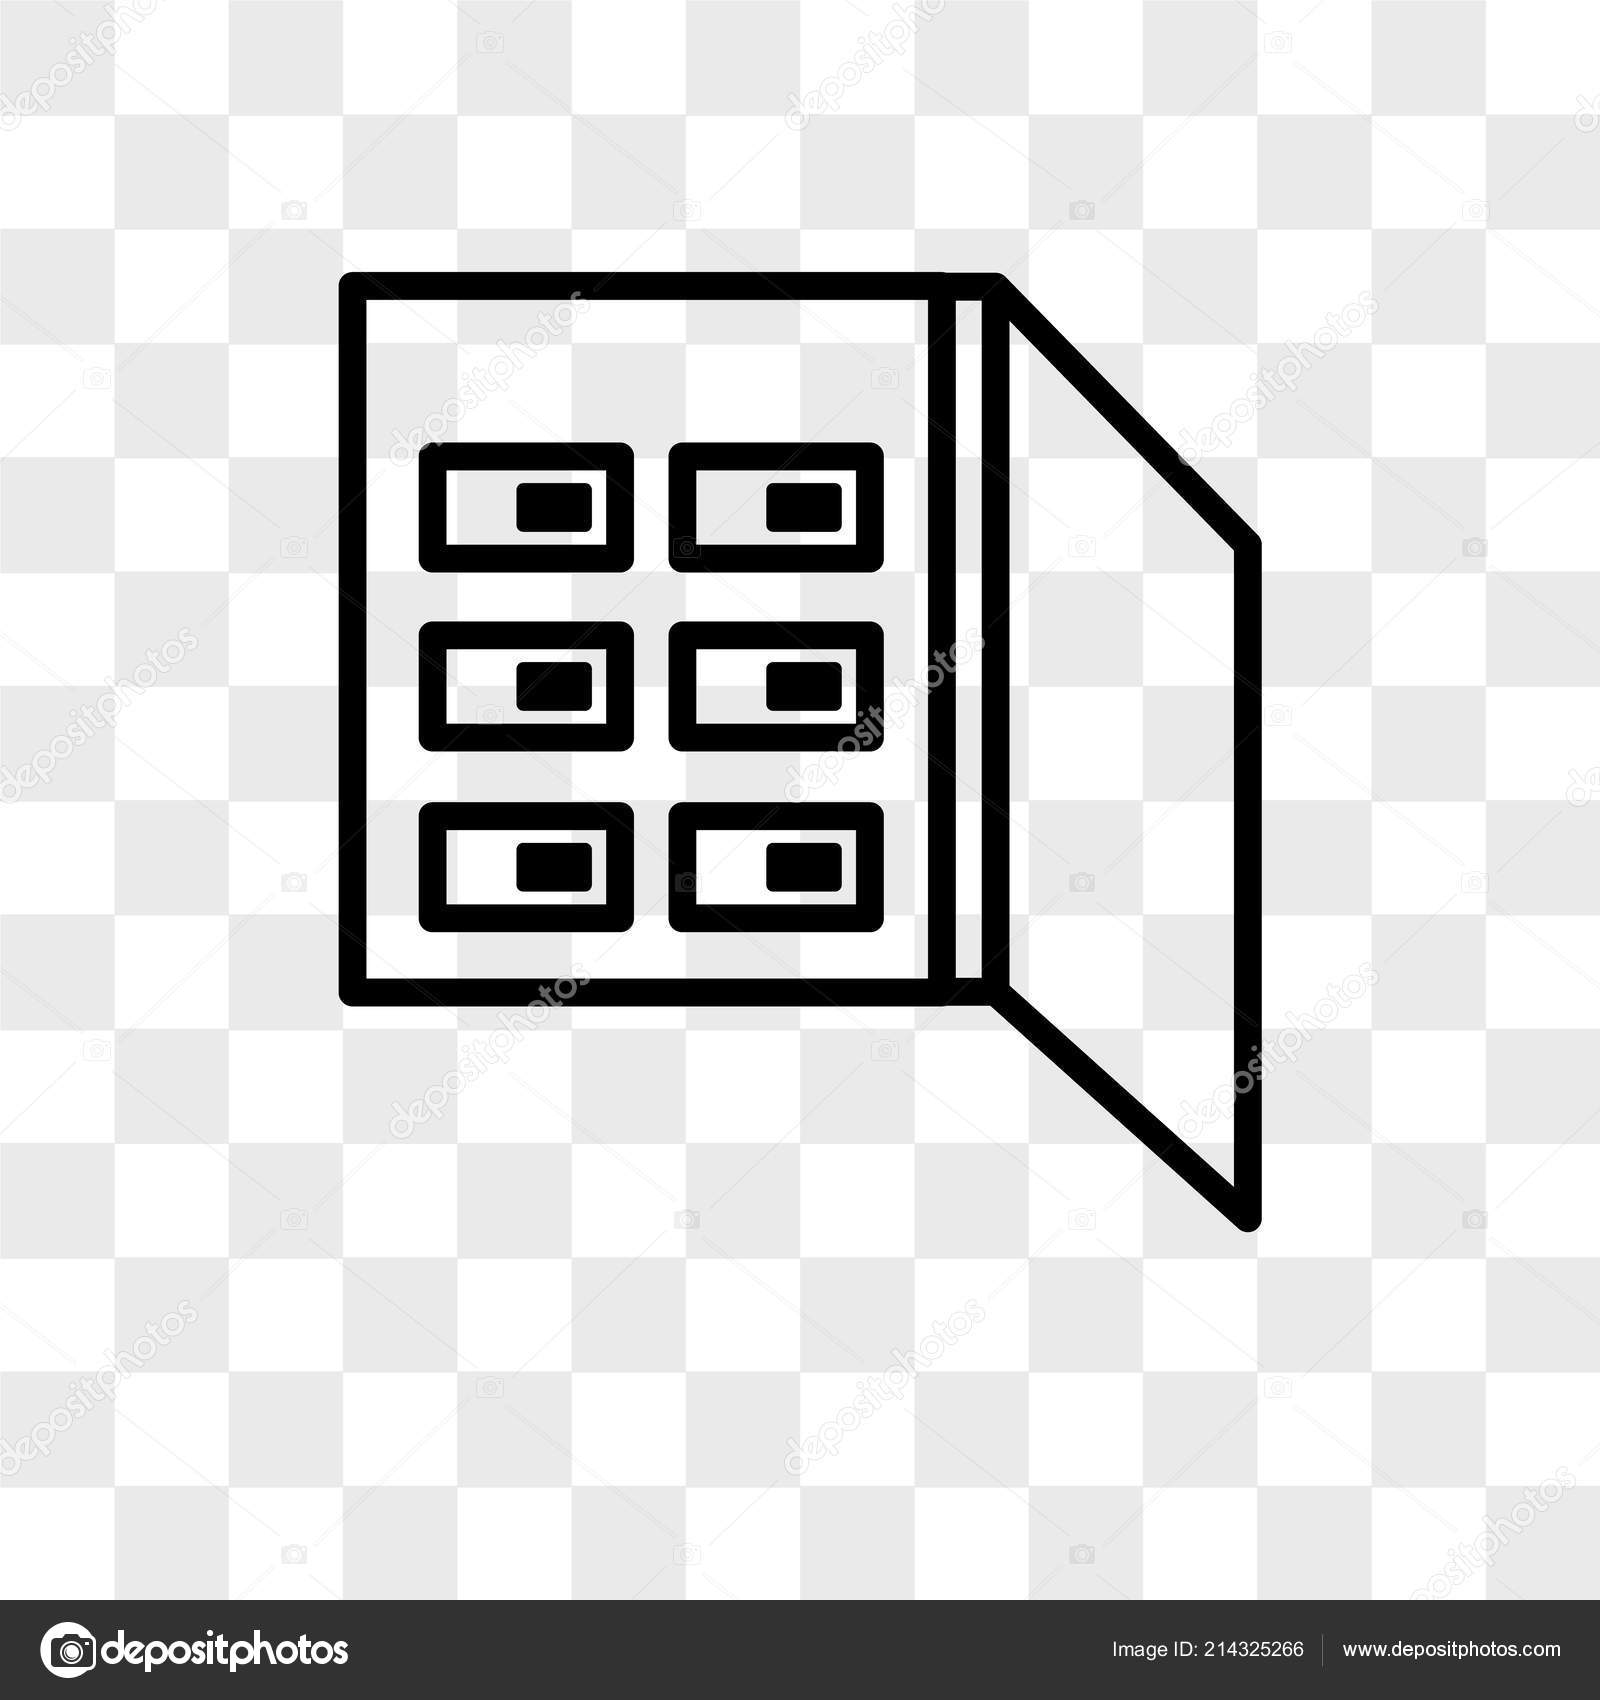 hight resolution of fuse box icons wiring diagram fuse box clip art fuse box icons wiring diagramfuse box icons